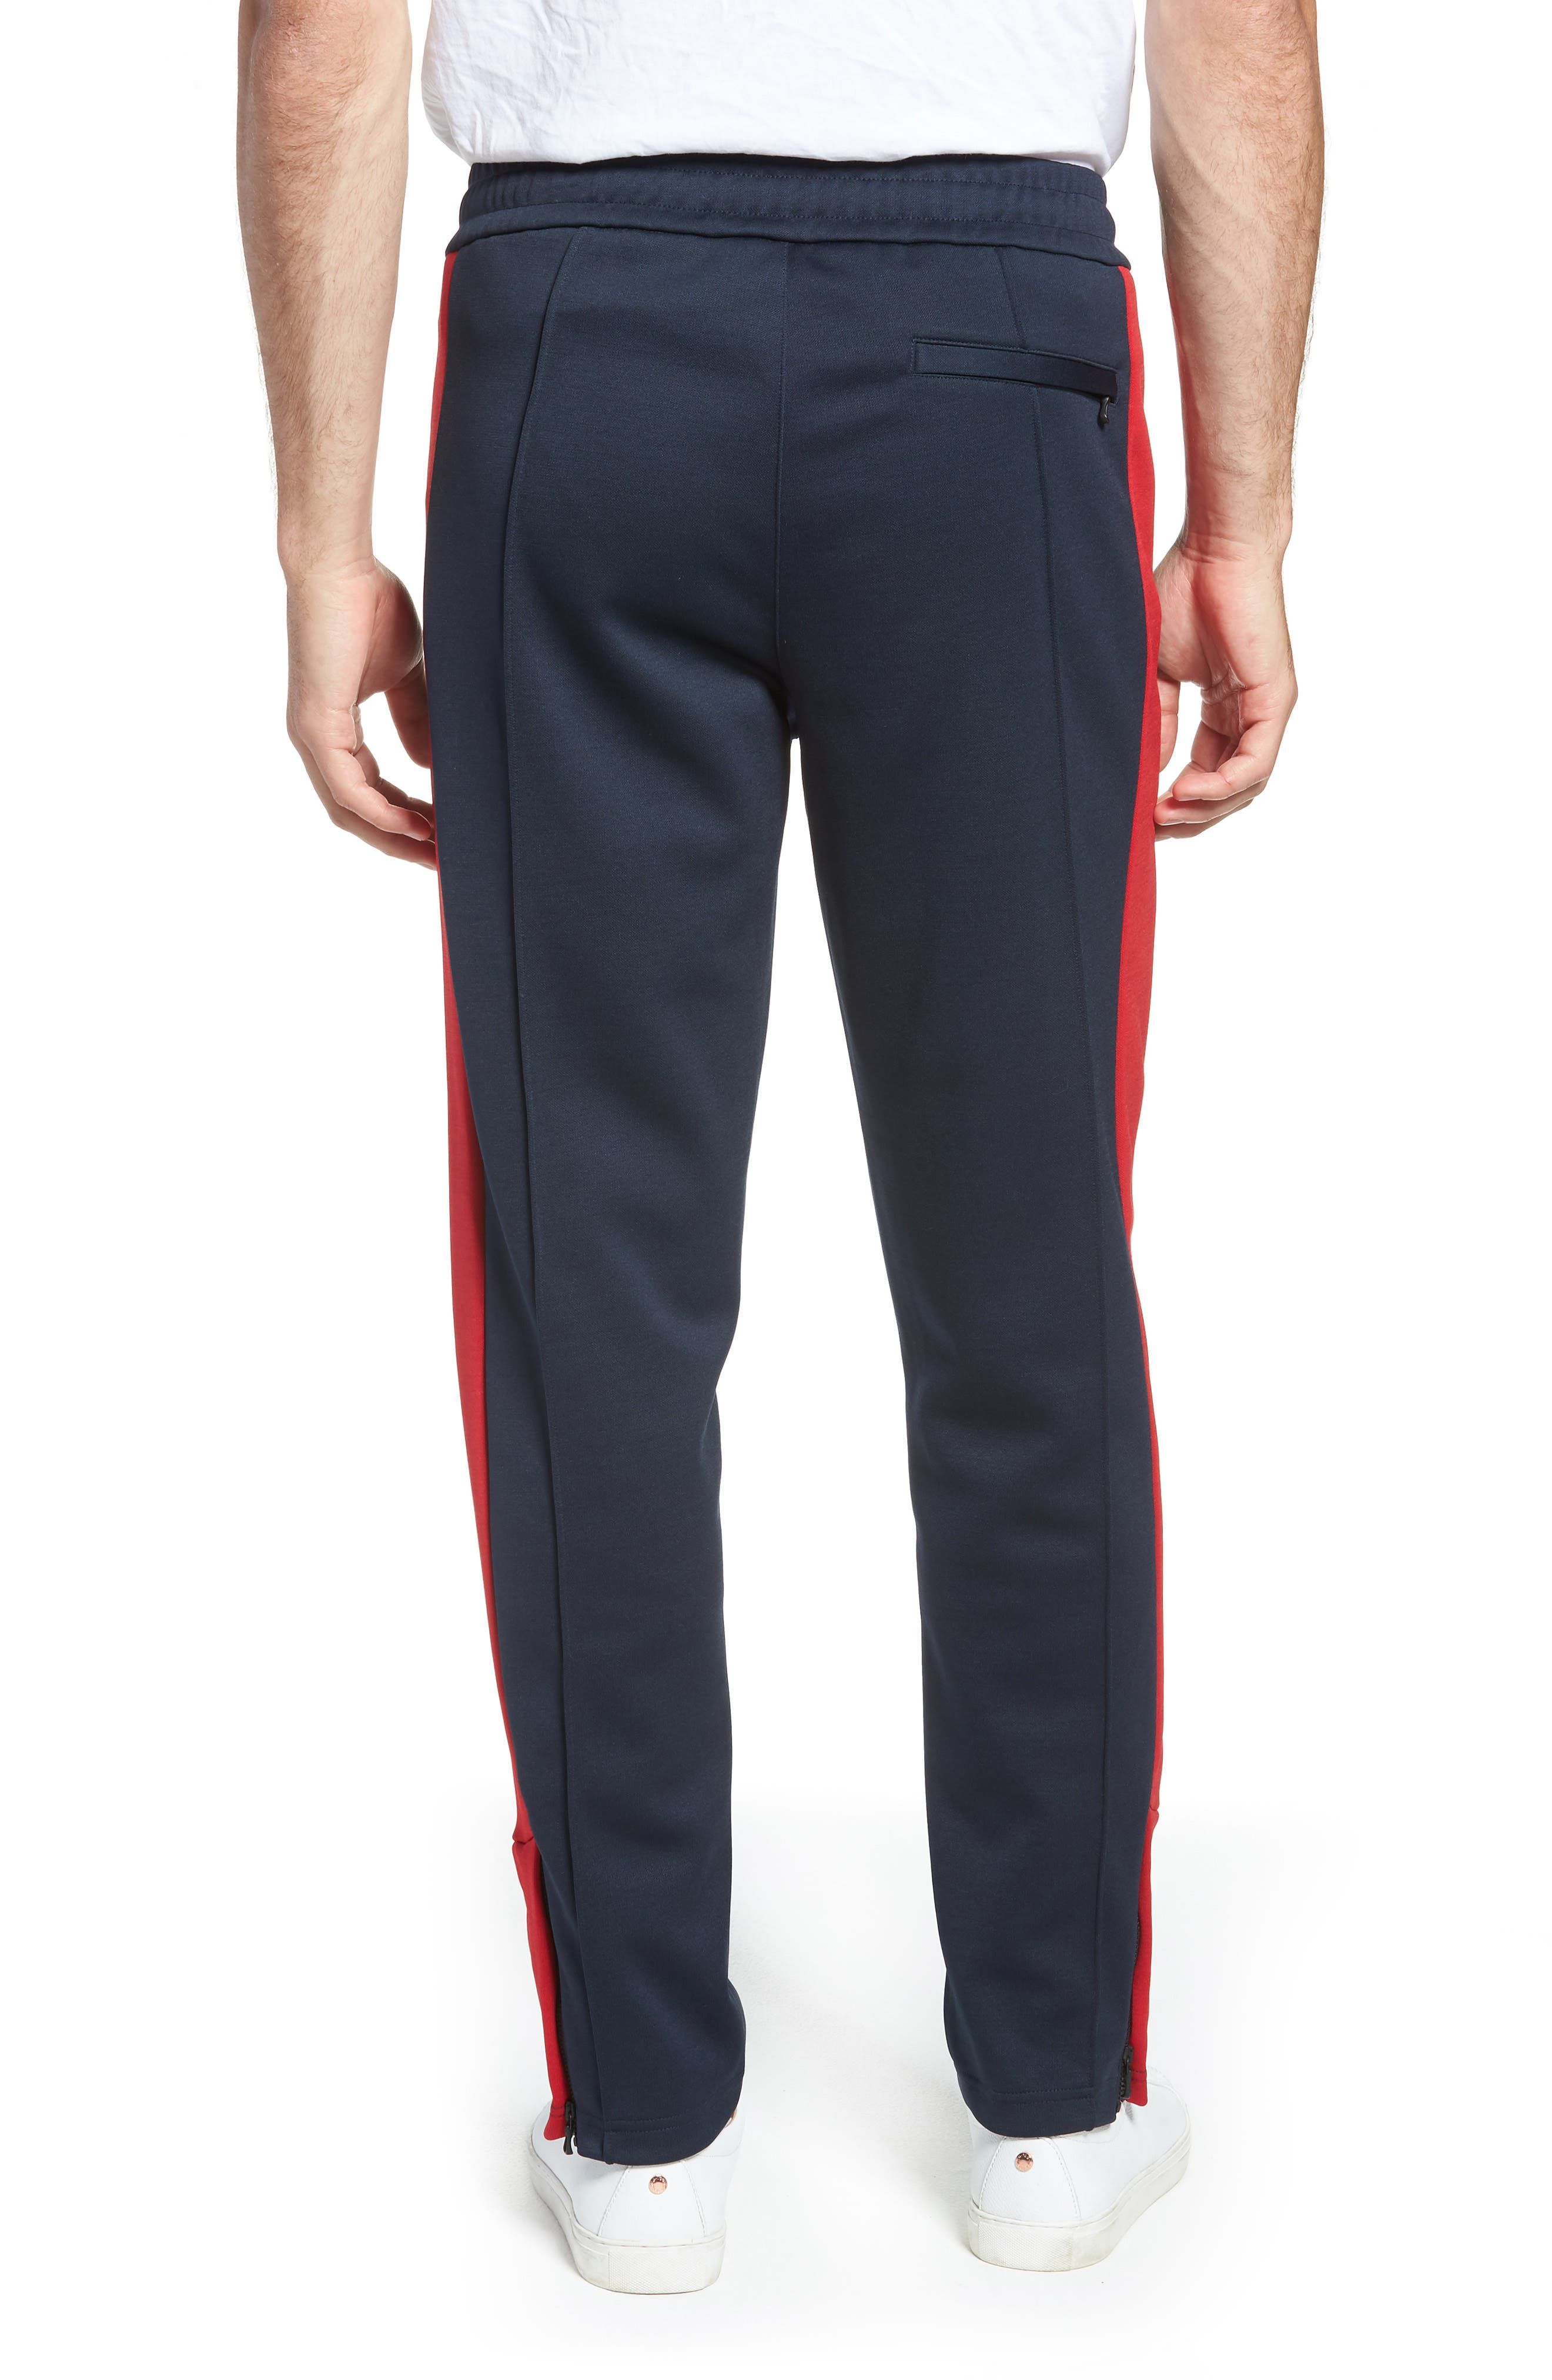 Club Slim Fit Track Pants,                             Alternate thumbnail 2, color,                             NAVY/ RED